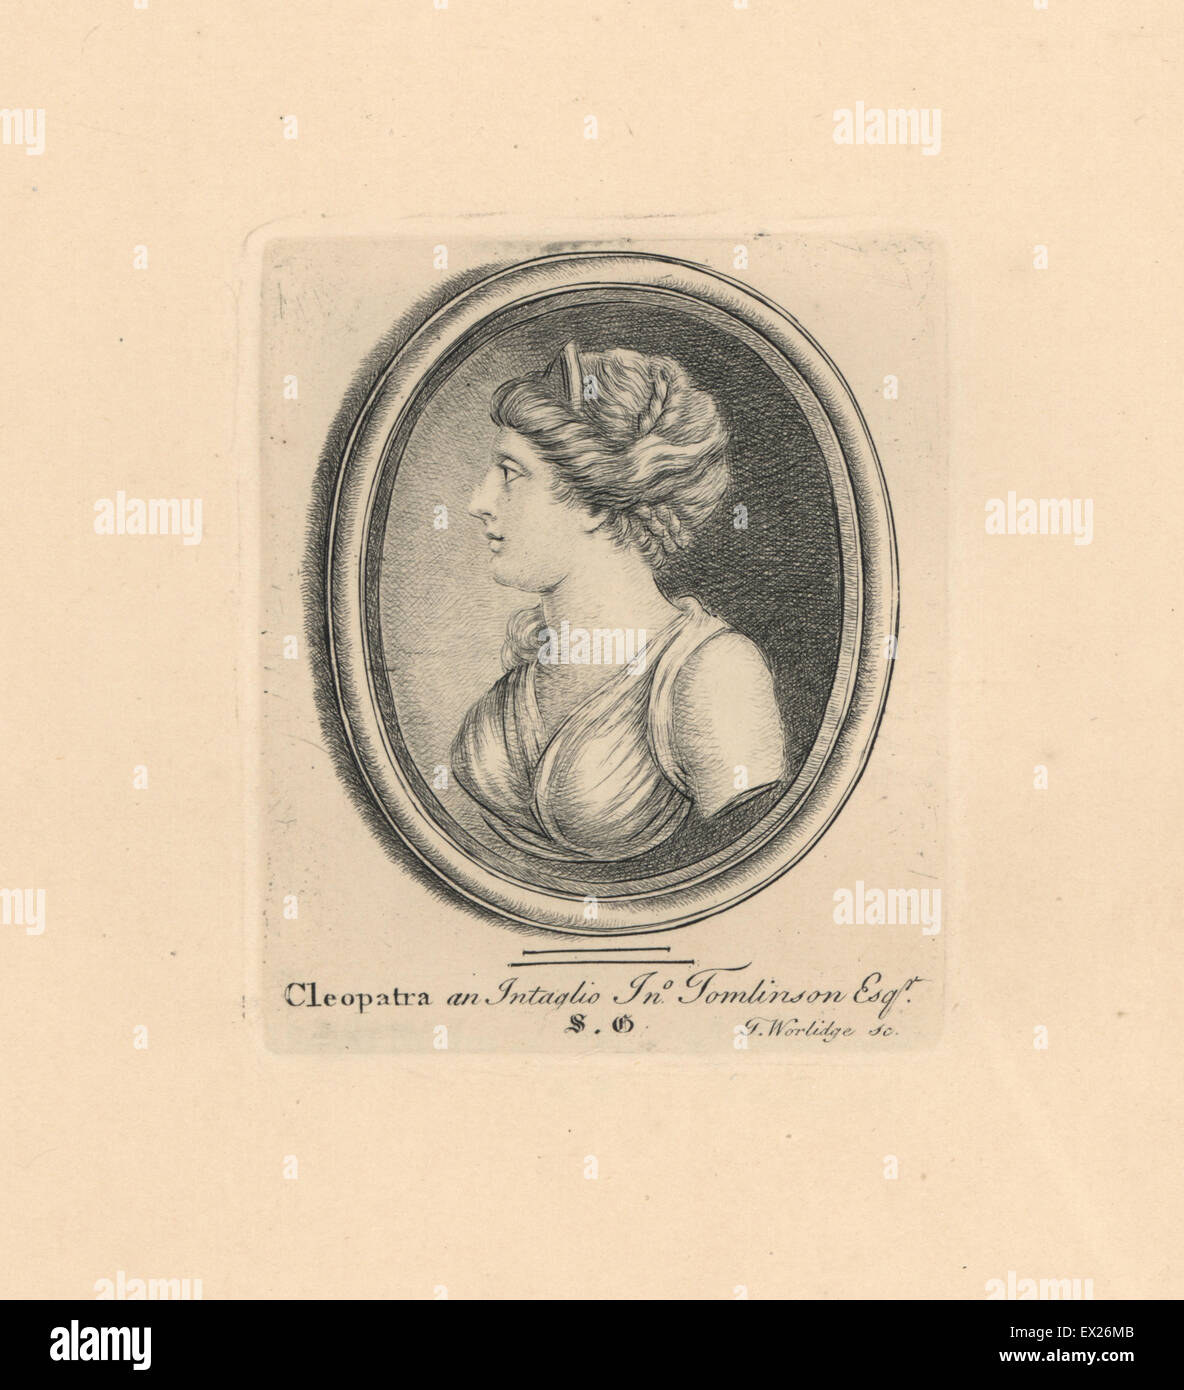 Portrait of Cleopatra, last Pharaoh of Egypt, from an intaglio in the collection of I. Tomlinson. Copperplate engraving - Stock Image